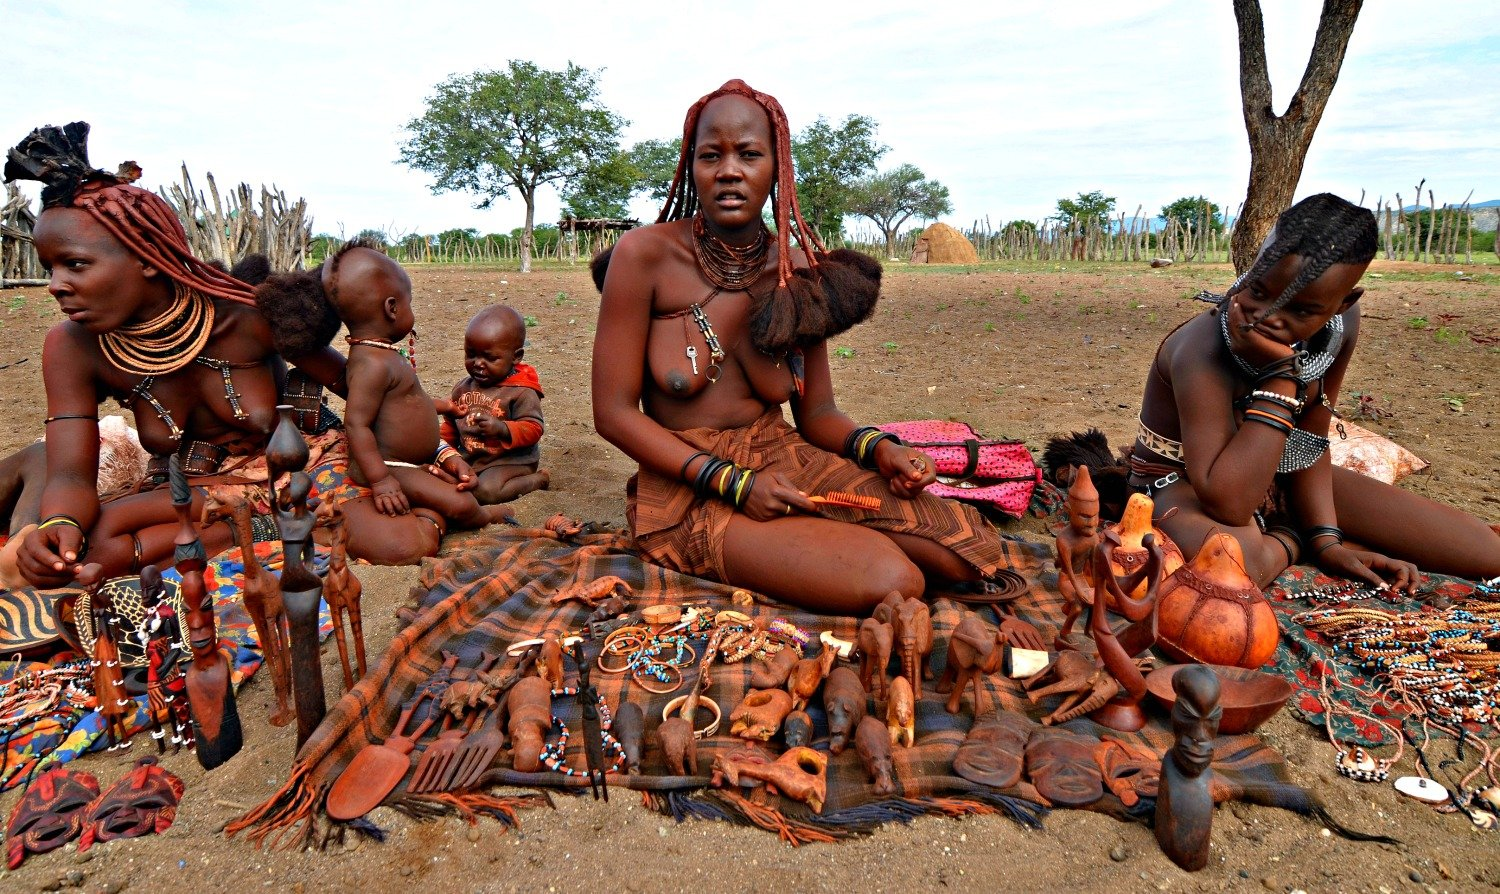 Men in african tribes naked